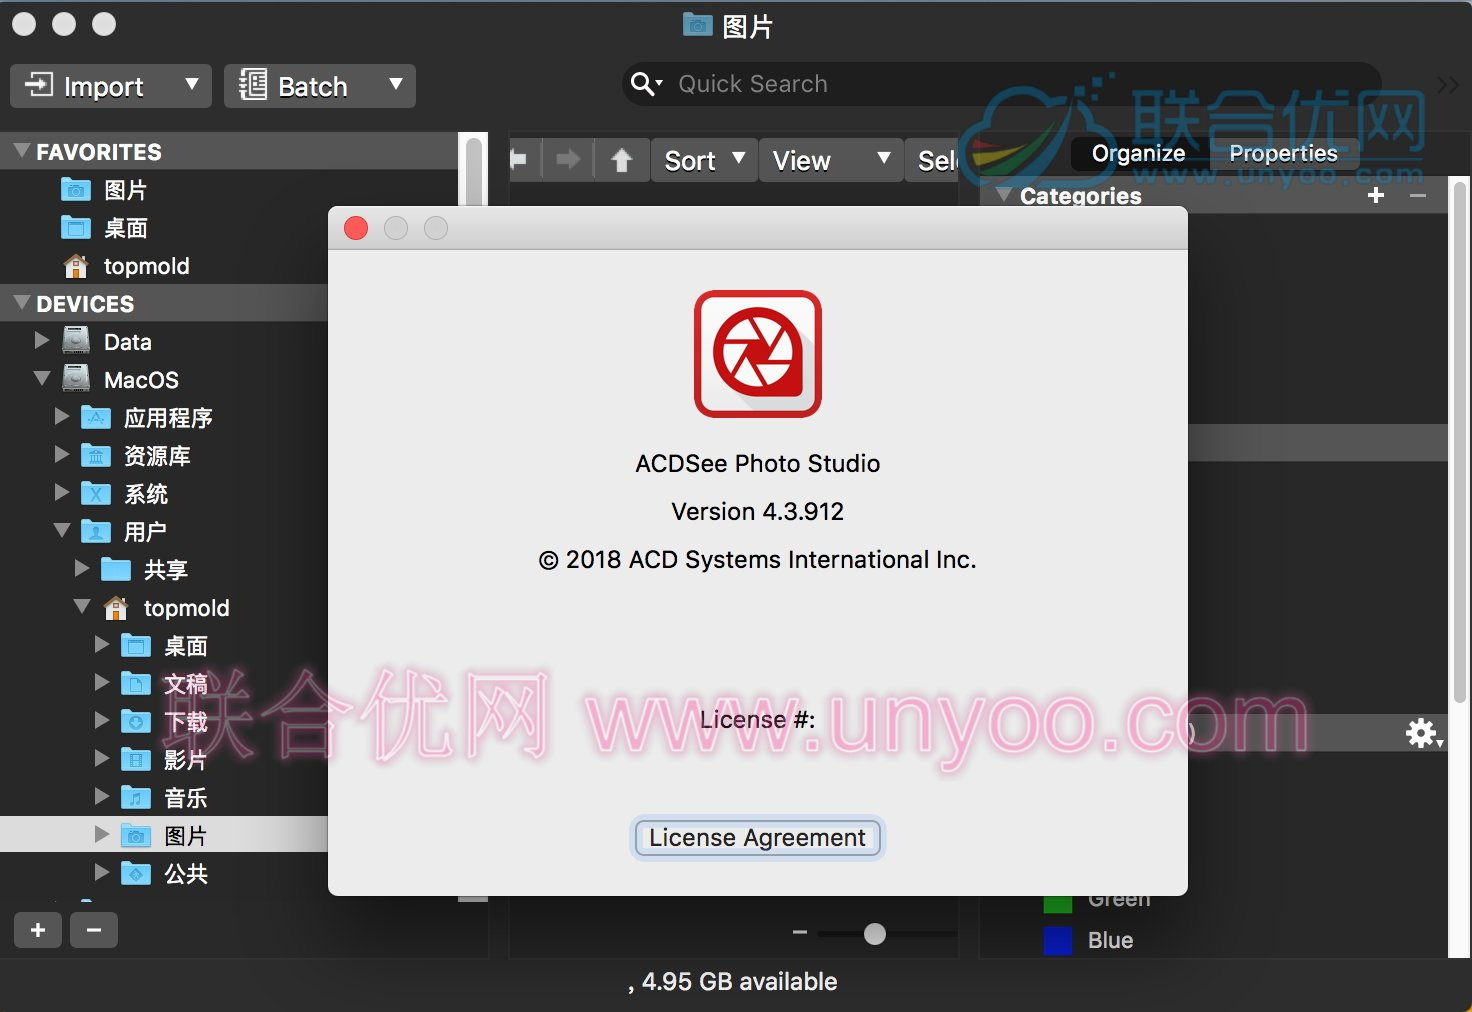 ACDSee Photo Studio for Mac 4 v4.4.923 正式注册版-Mac图像管理